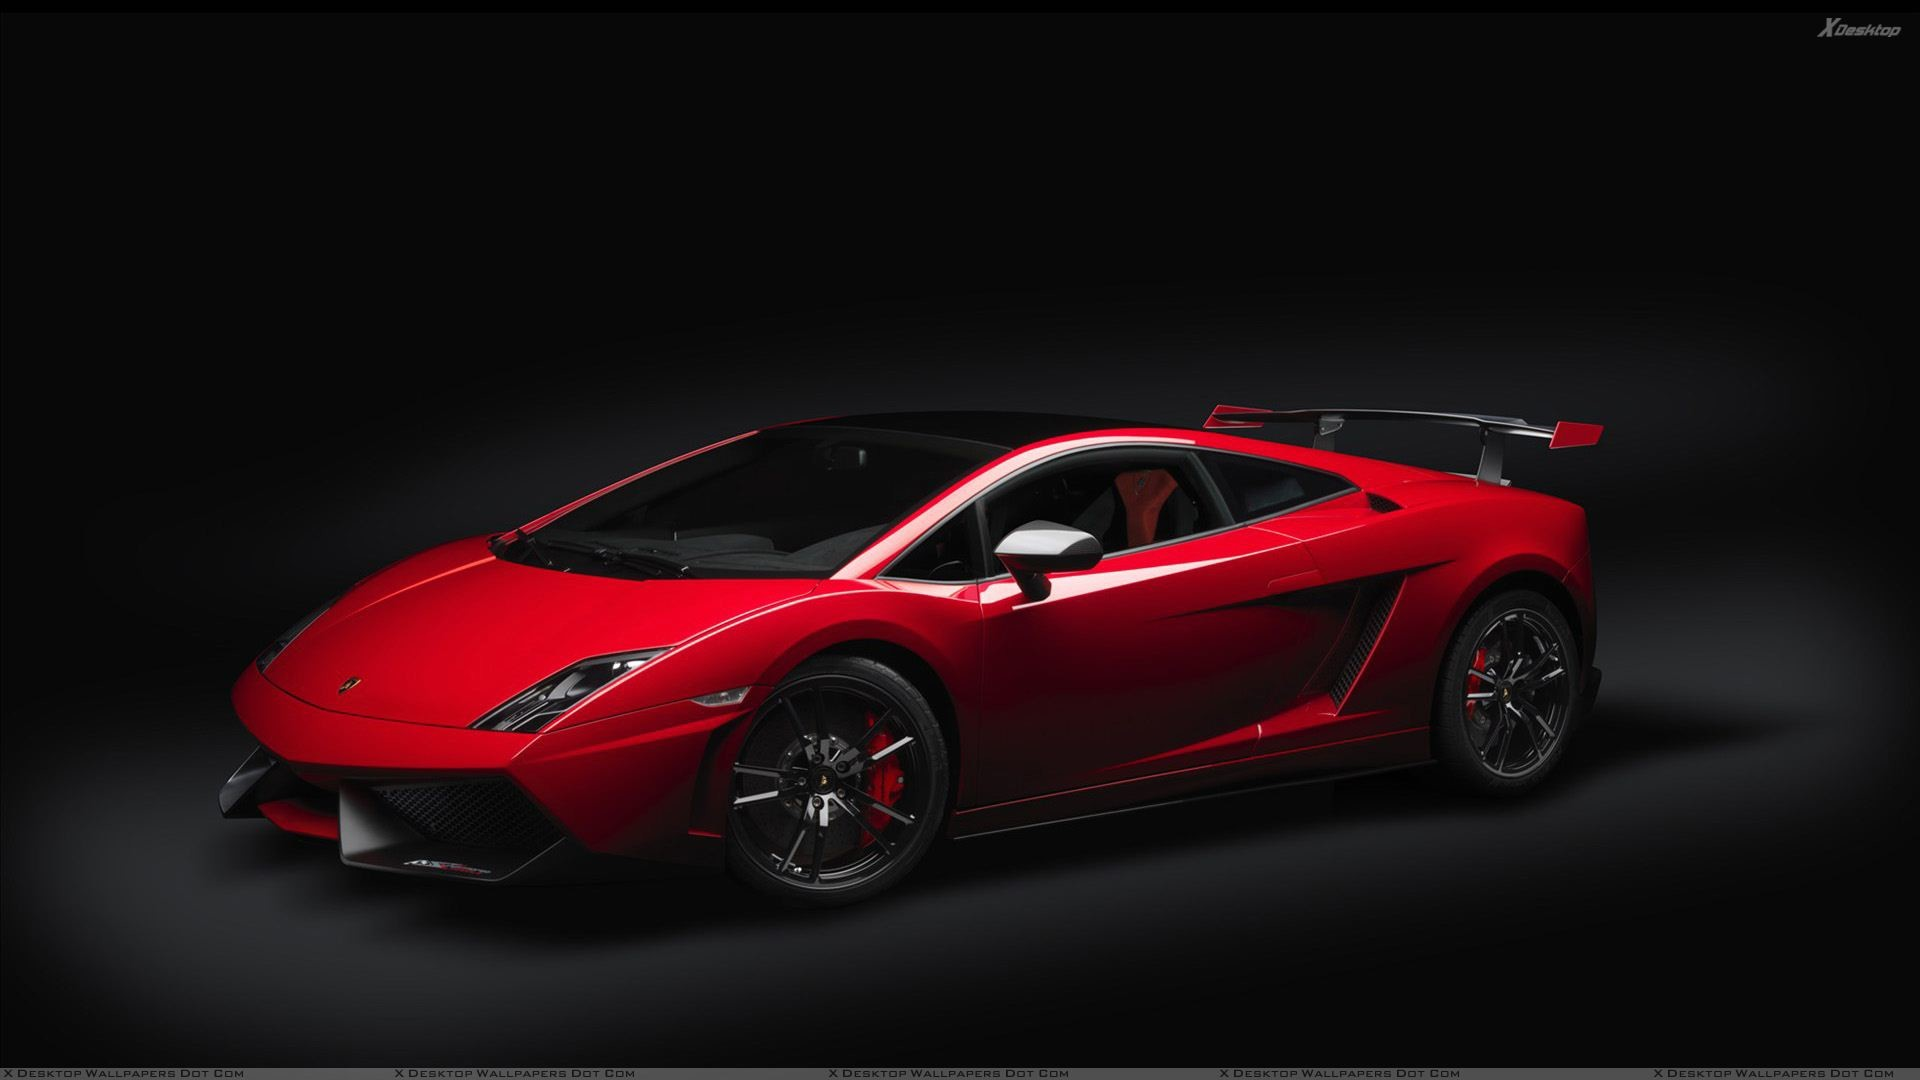 Res: 1920x1080, Cool Red Lamborghini Wallpapers. Red Lamborghini Wallpaper 4508 Hd  Wallpapers